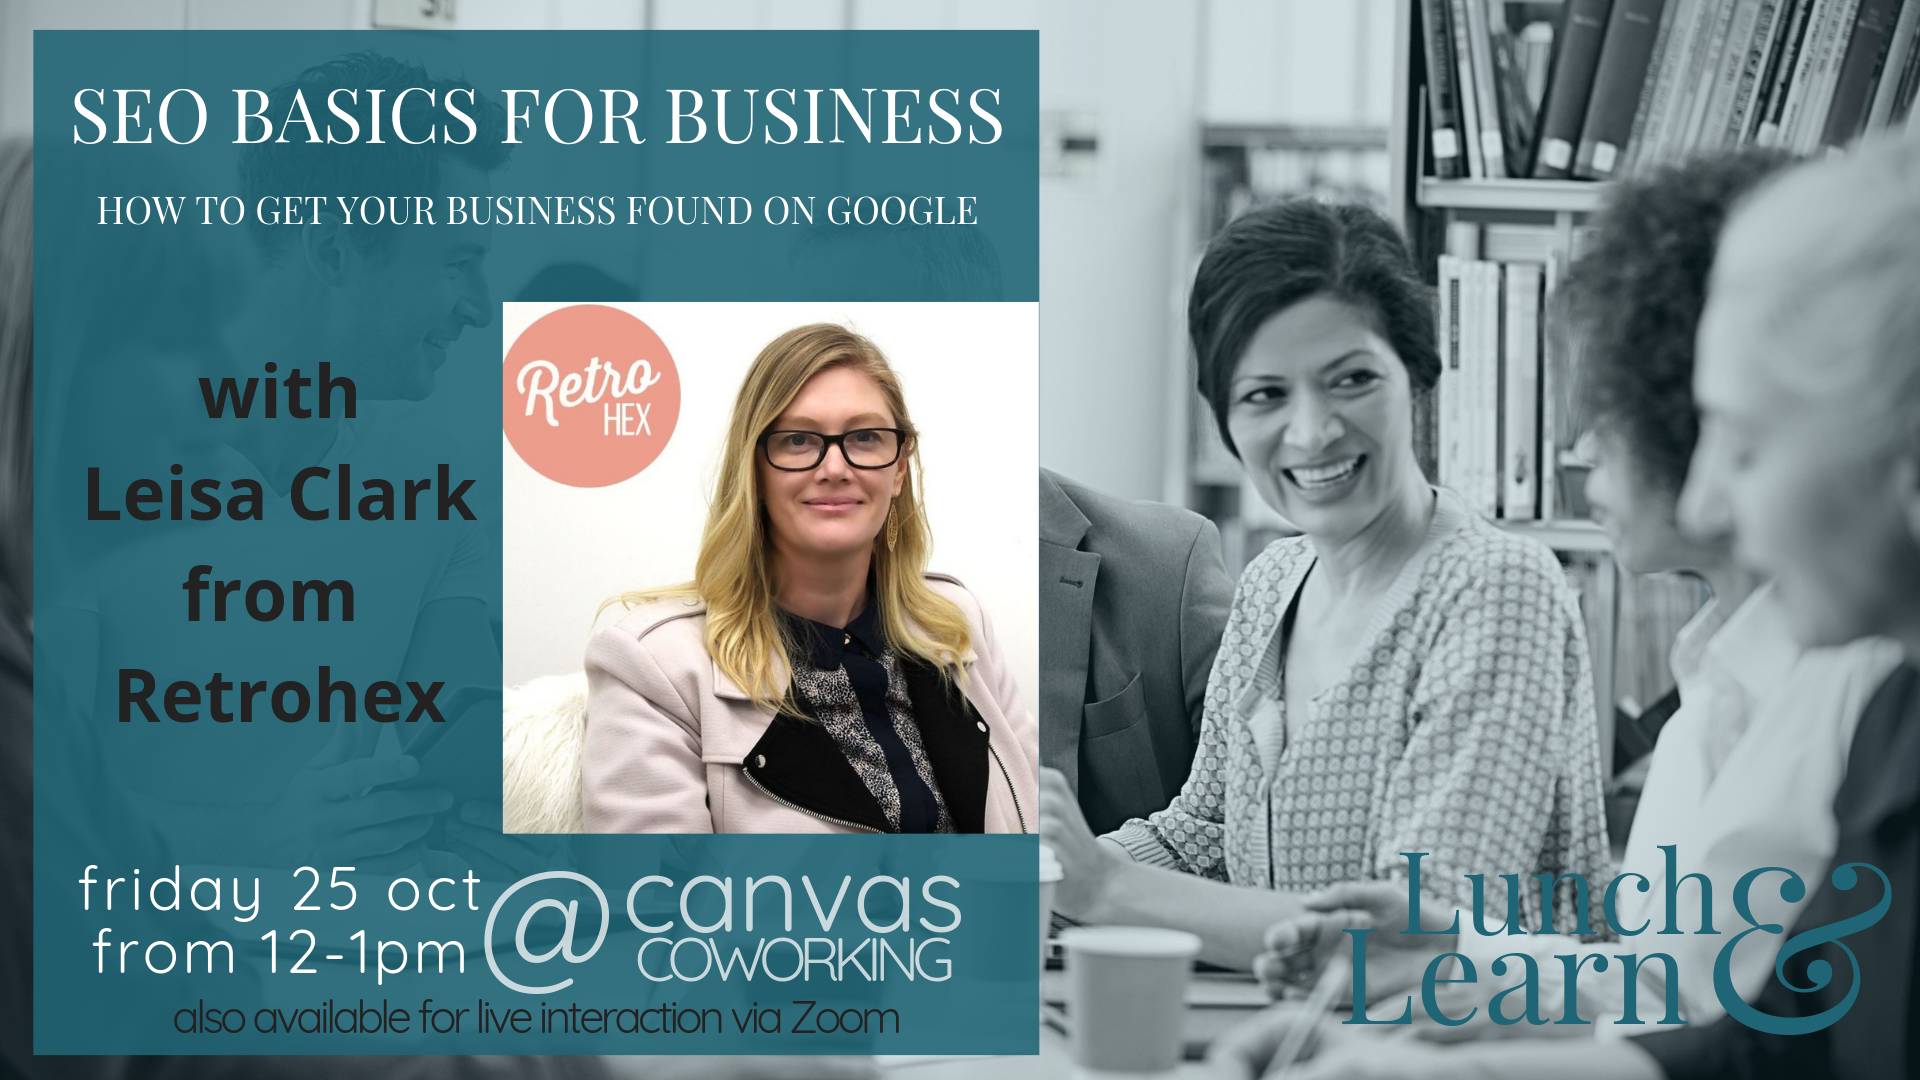 SEO Basics for Business, lunch and learn, canvas coworking 25 October 2019